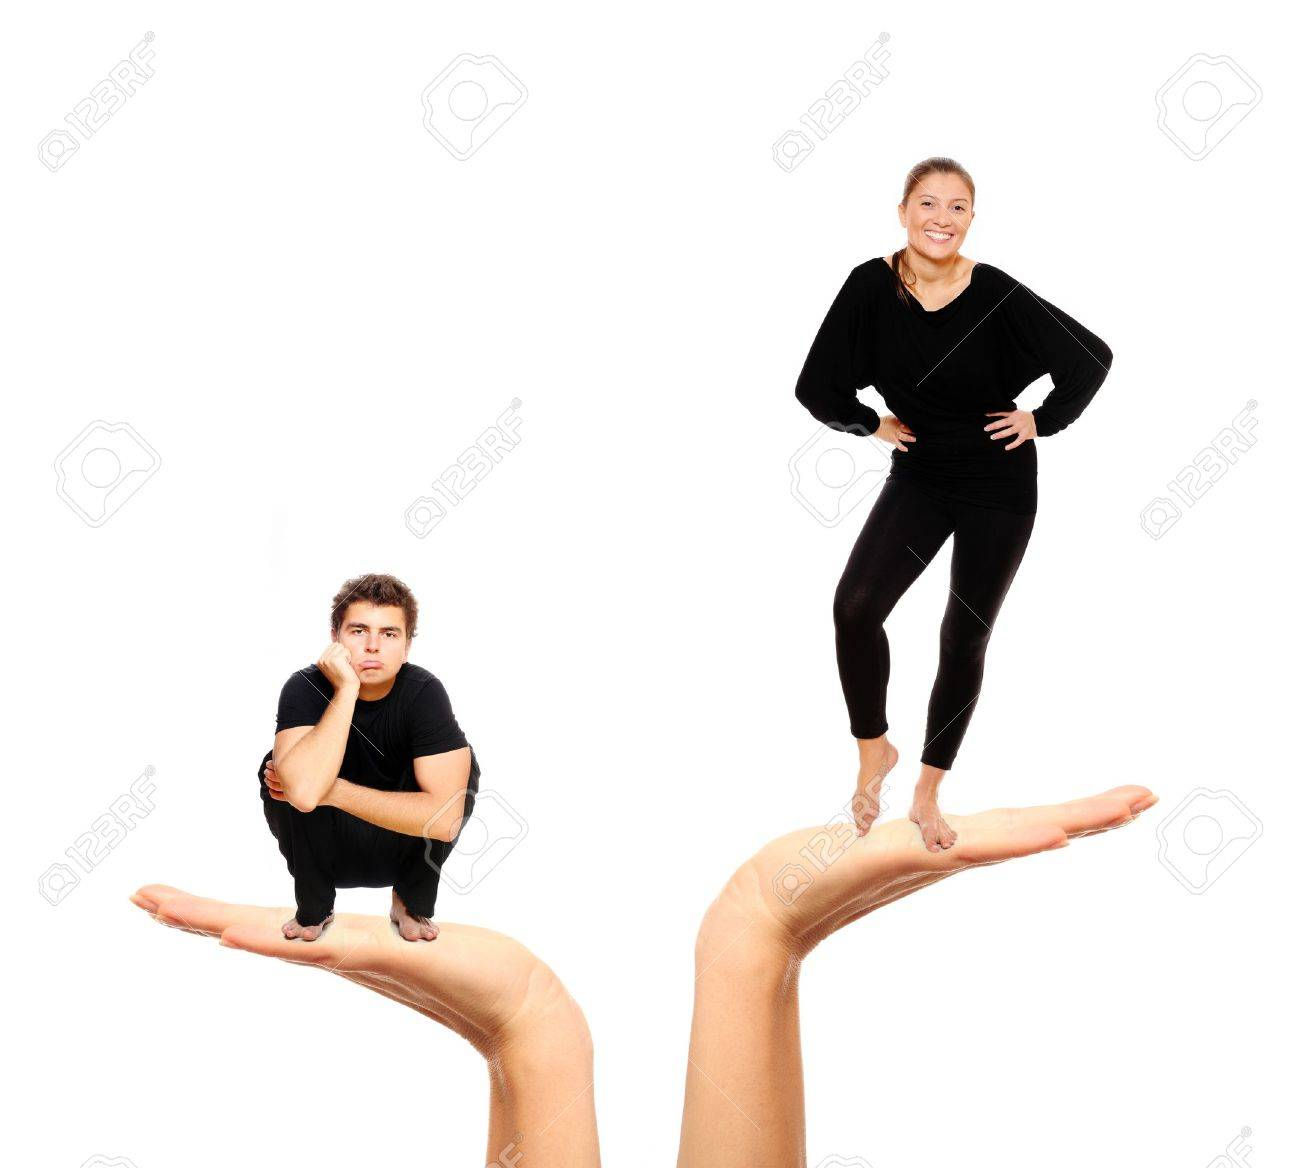 A picture of a sad man and a happy woman over white background Stock Photo - 8524705